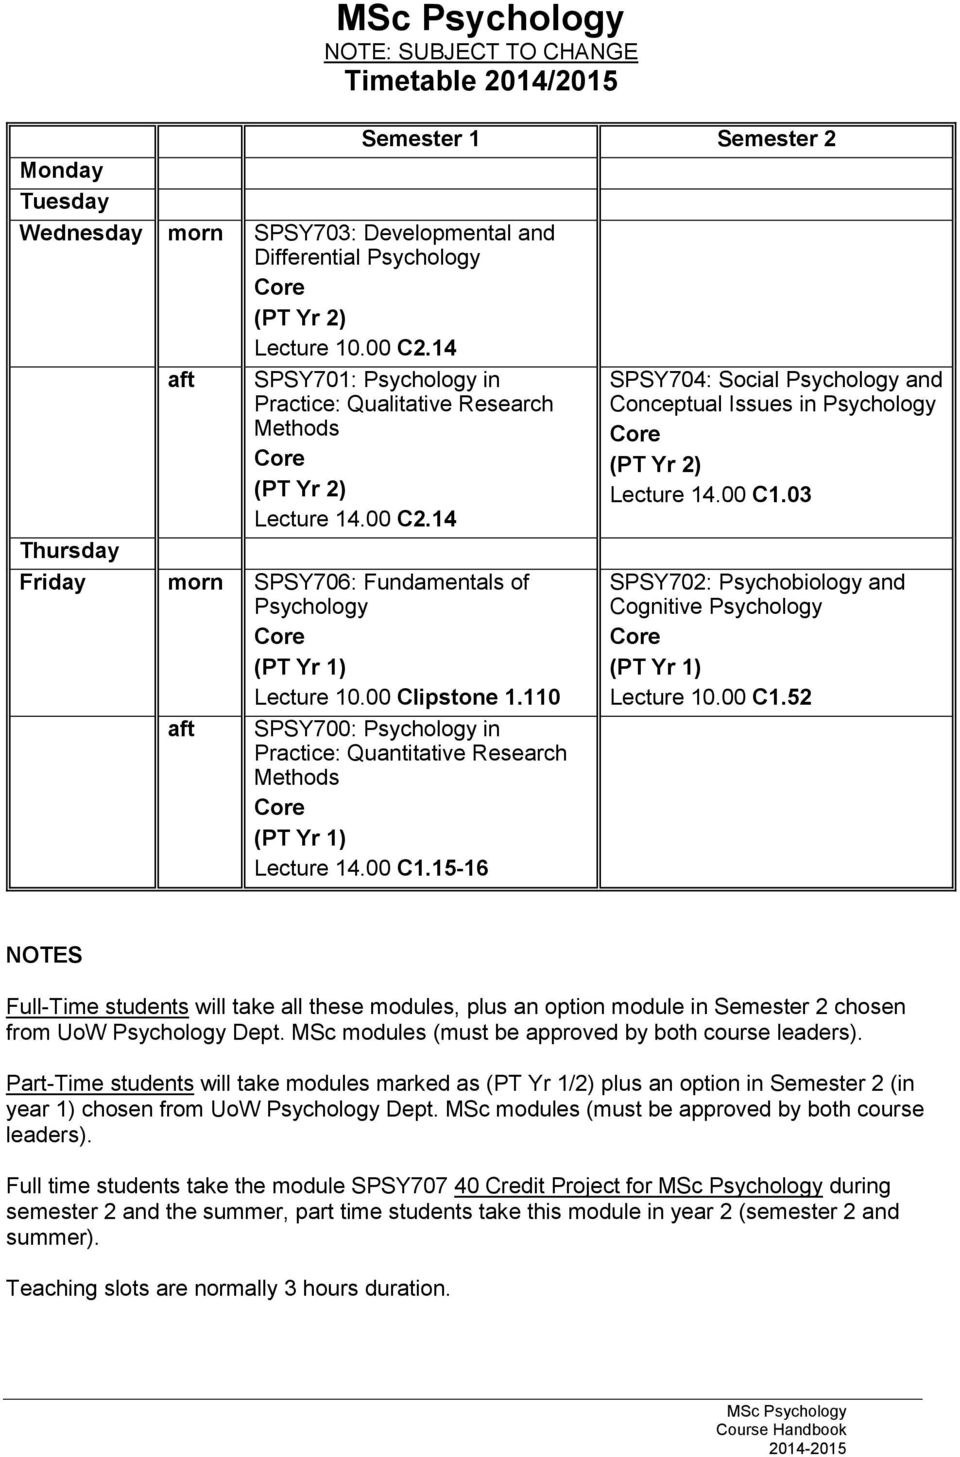 03 Thursday Friday morn SPSY706: Fundamentals of Psychology (PT Yr 1) Lecture 10.00 Clipstone 1.110 aft SPSY700: Psychology in Practice: Quantitative Research Methods (PT Yr 1) Lecture 14.00 C1.